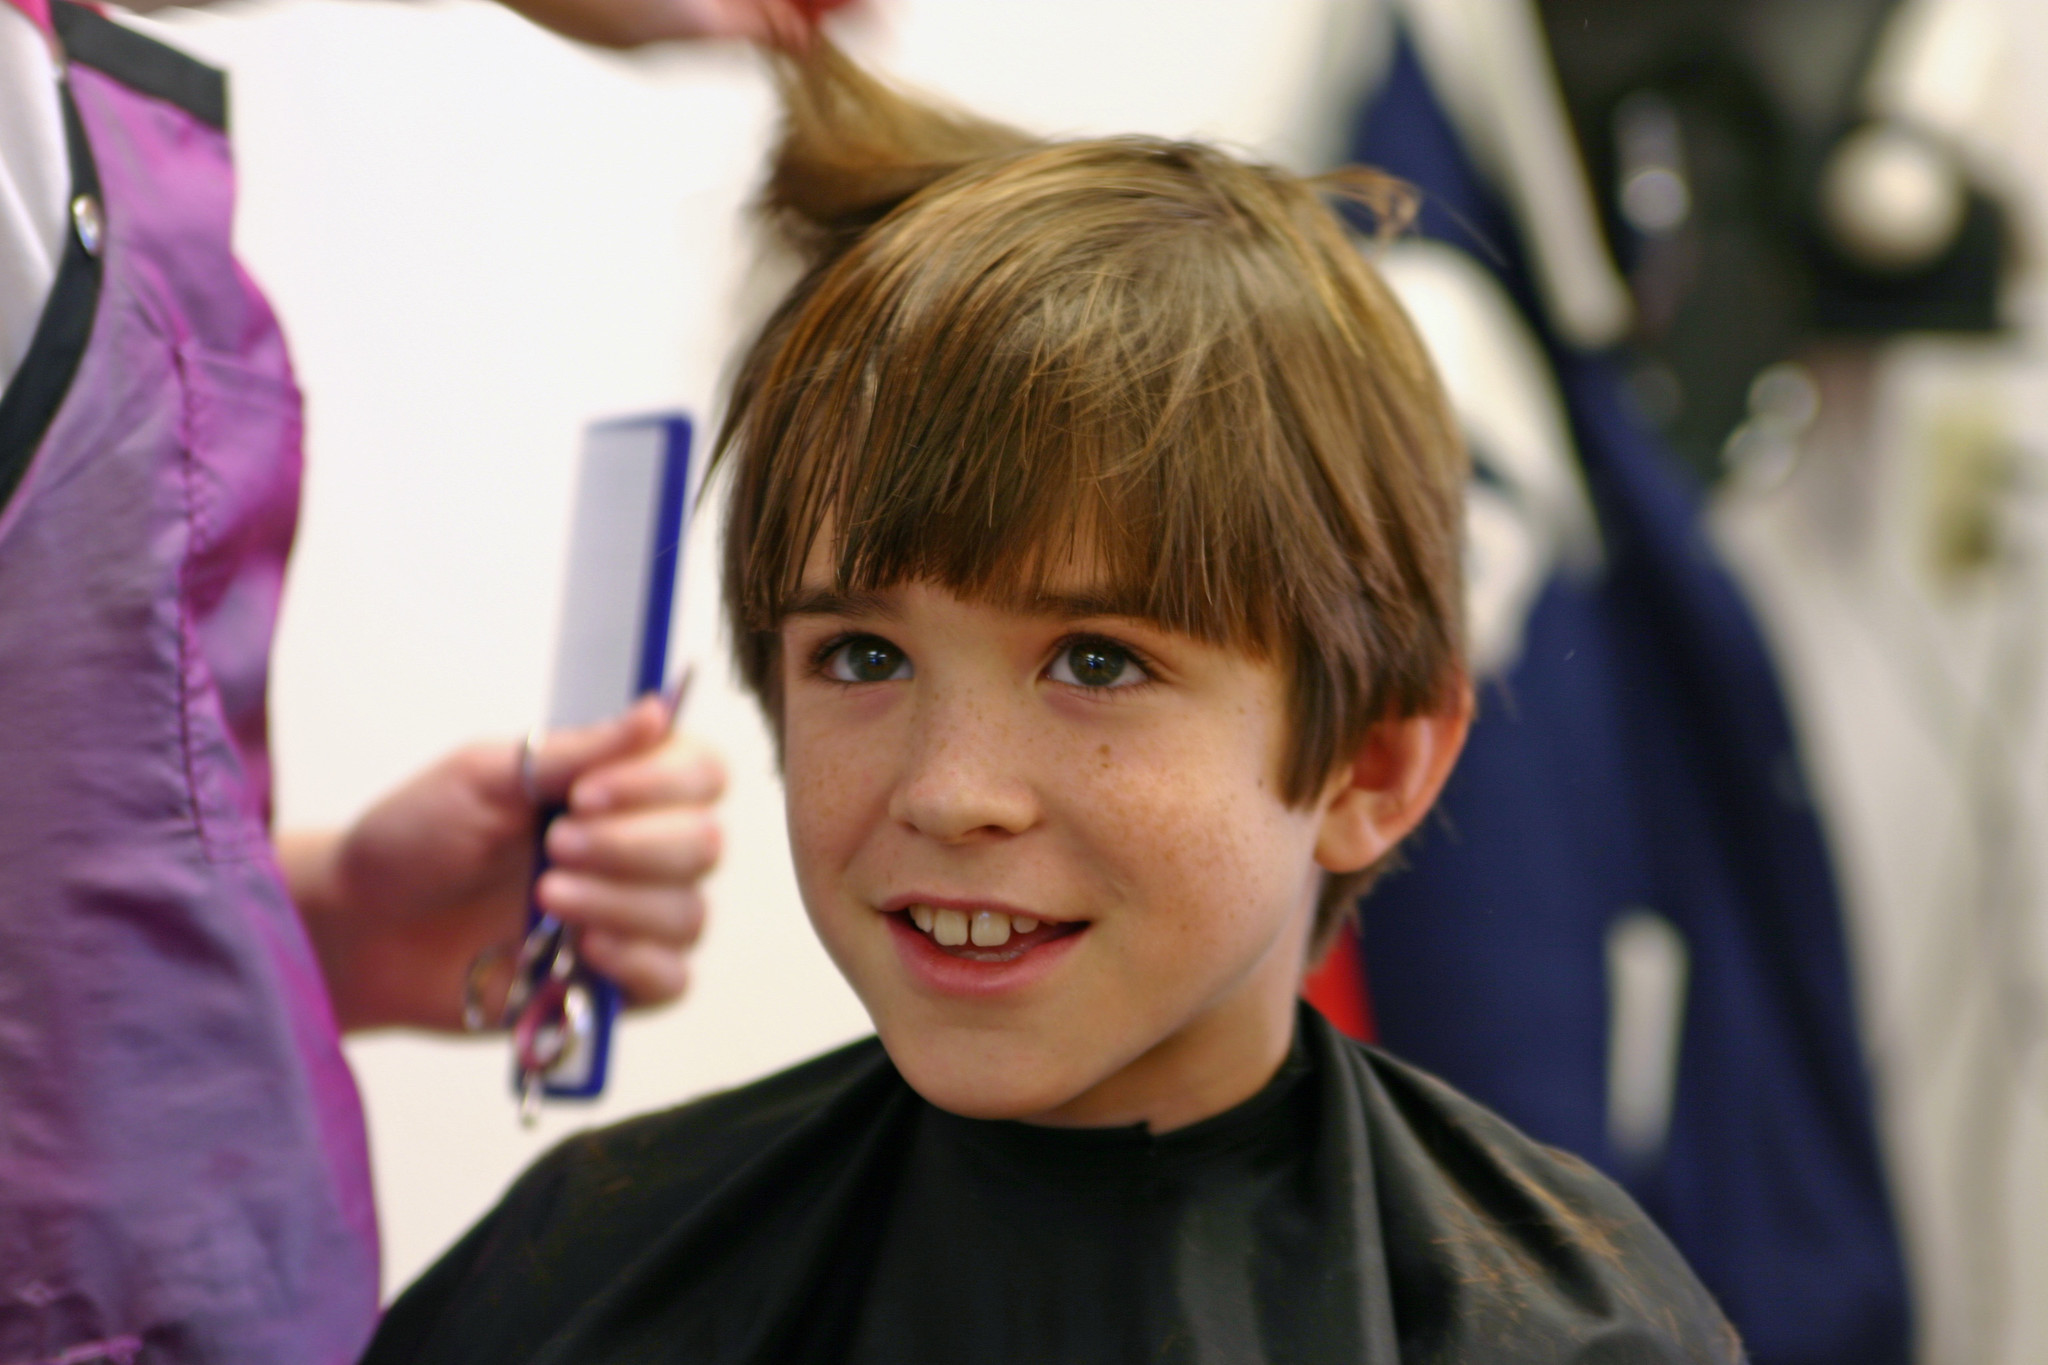 Back To School 10 Haircuts For Kids Free 10 Rewards At Jc Penney